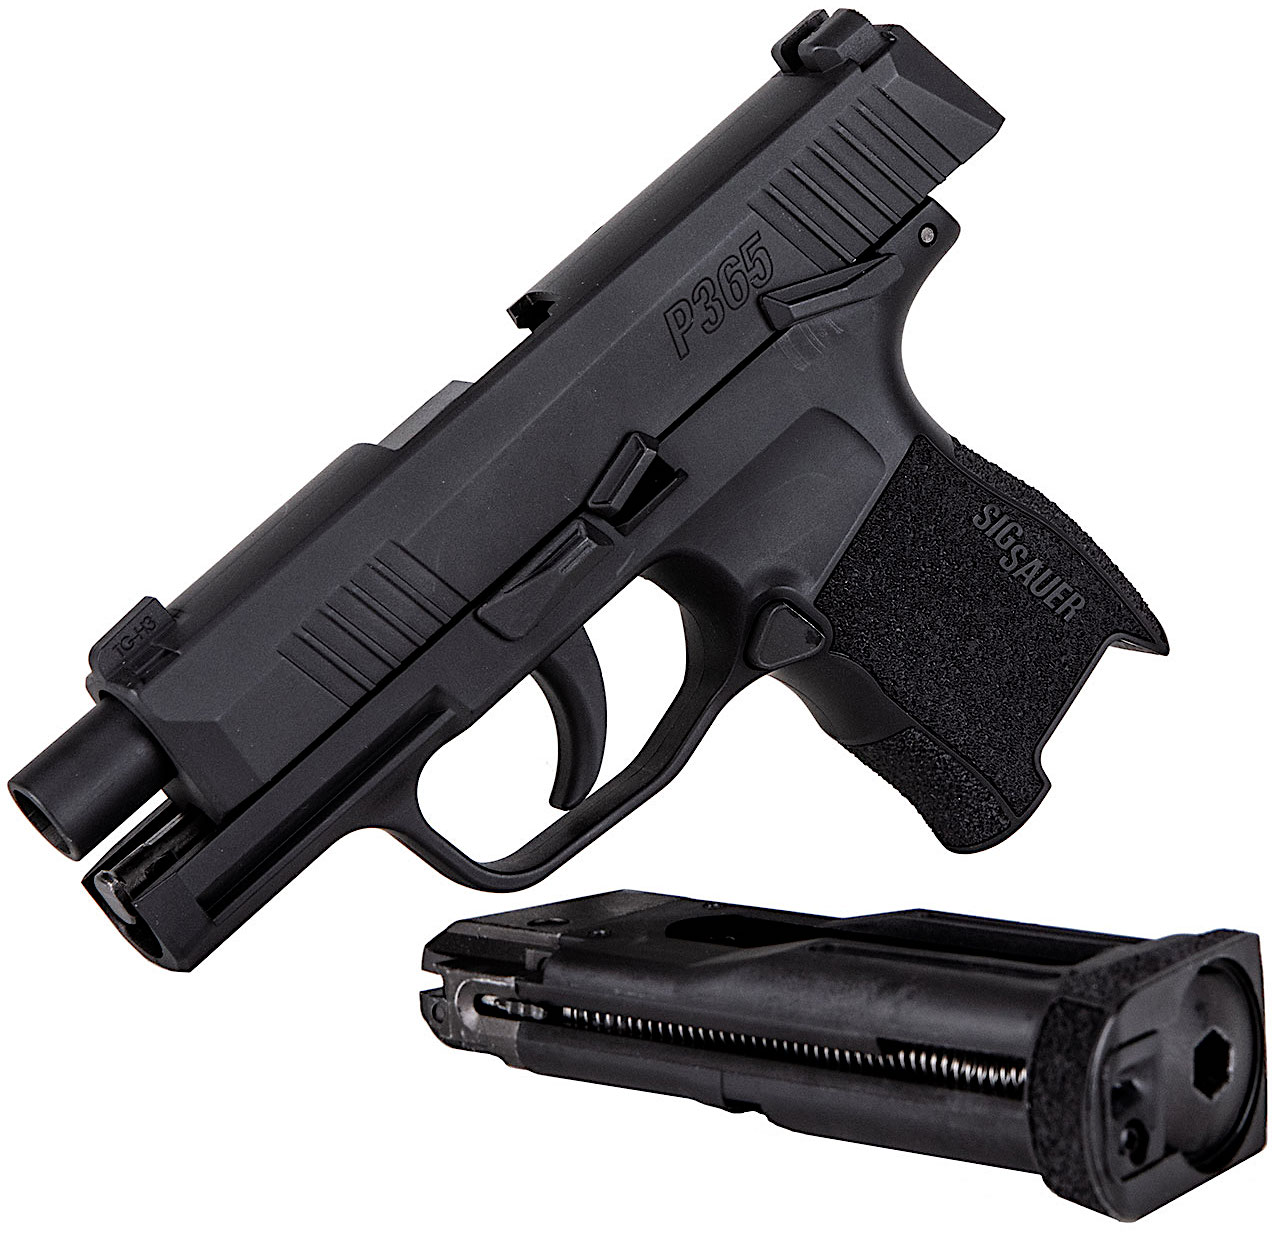 Sig Sauer P365 CO2 Blowback BB Pistol Open Mag.jpg